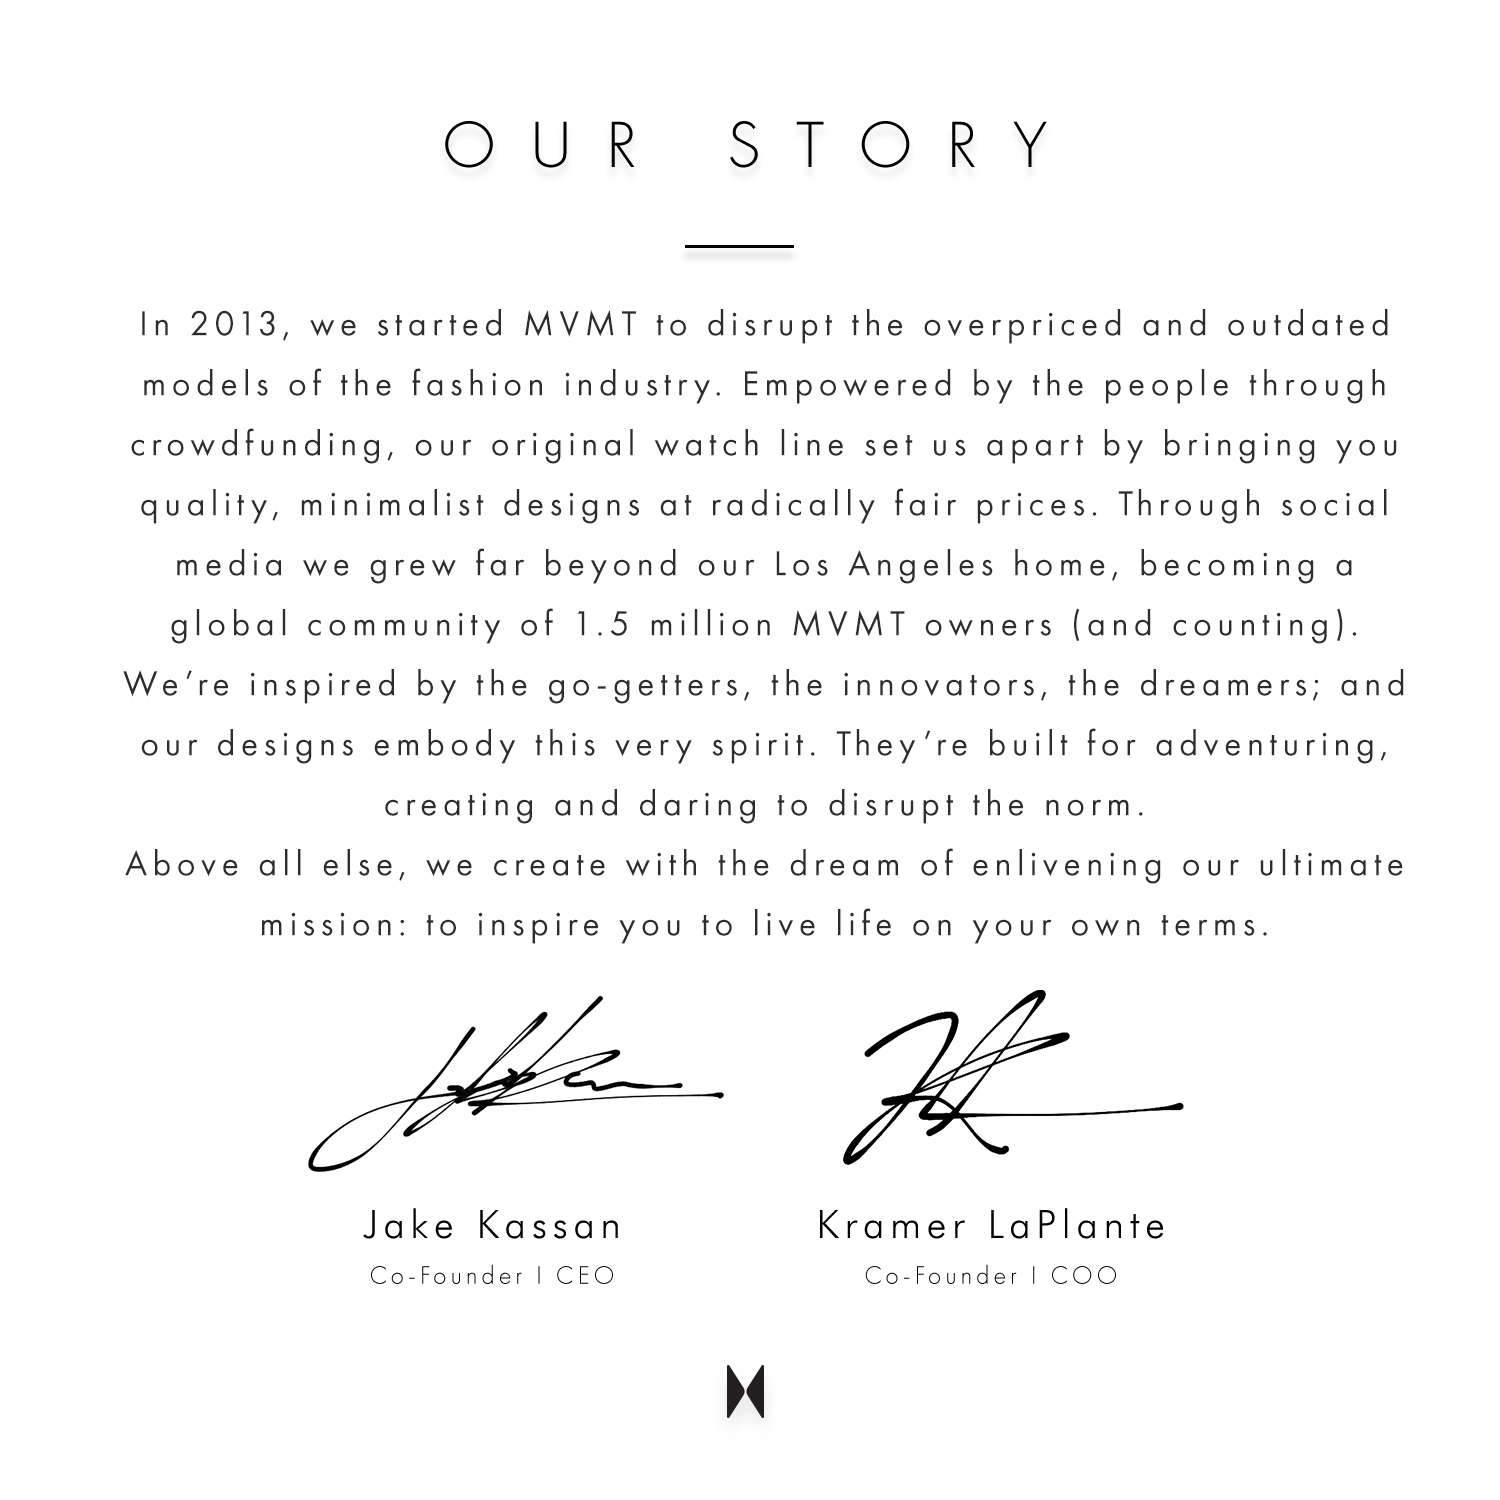 Our story. In 2013, we started MVMT to disrupt the overpriced and outdated models of the fashion industry. Empowered by the people through crowdfunding, our original watch line set us apart by bringing you quality, minimalist designs at radically fair prices. Through social media we grew far beyond our Los Angeles home, becoming a global community of 1.5 million MVMT owners (and counting). We're inspired by the go-getters, the innovators, the dreamers; and our designs embody this very spirit. They're built for adventuring, creating and daring to disrupt the norm. Above all else, we create with the dream of enlivening our ultimate mission: to inspire you to live life on your own terms. Jake Kassan Co-founder | CEO. Kramer LaPlante Co-founder COO